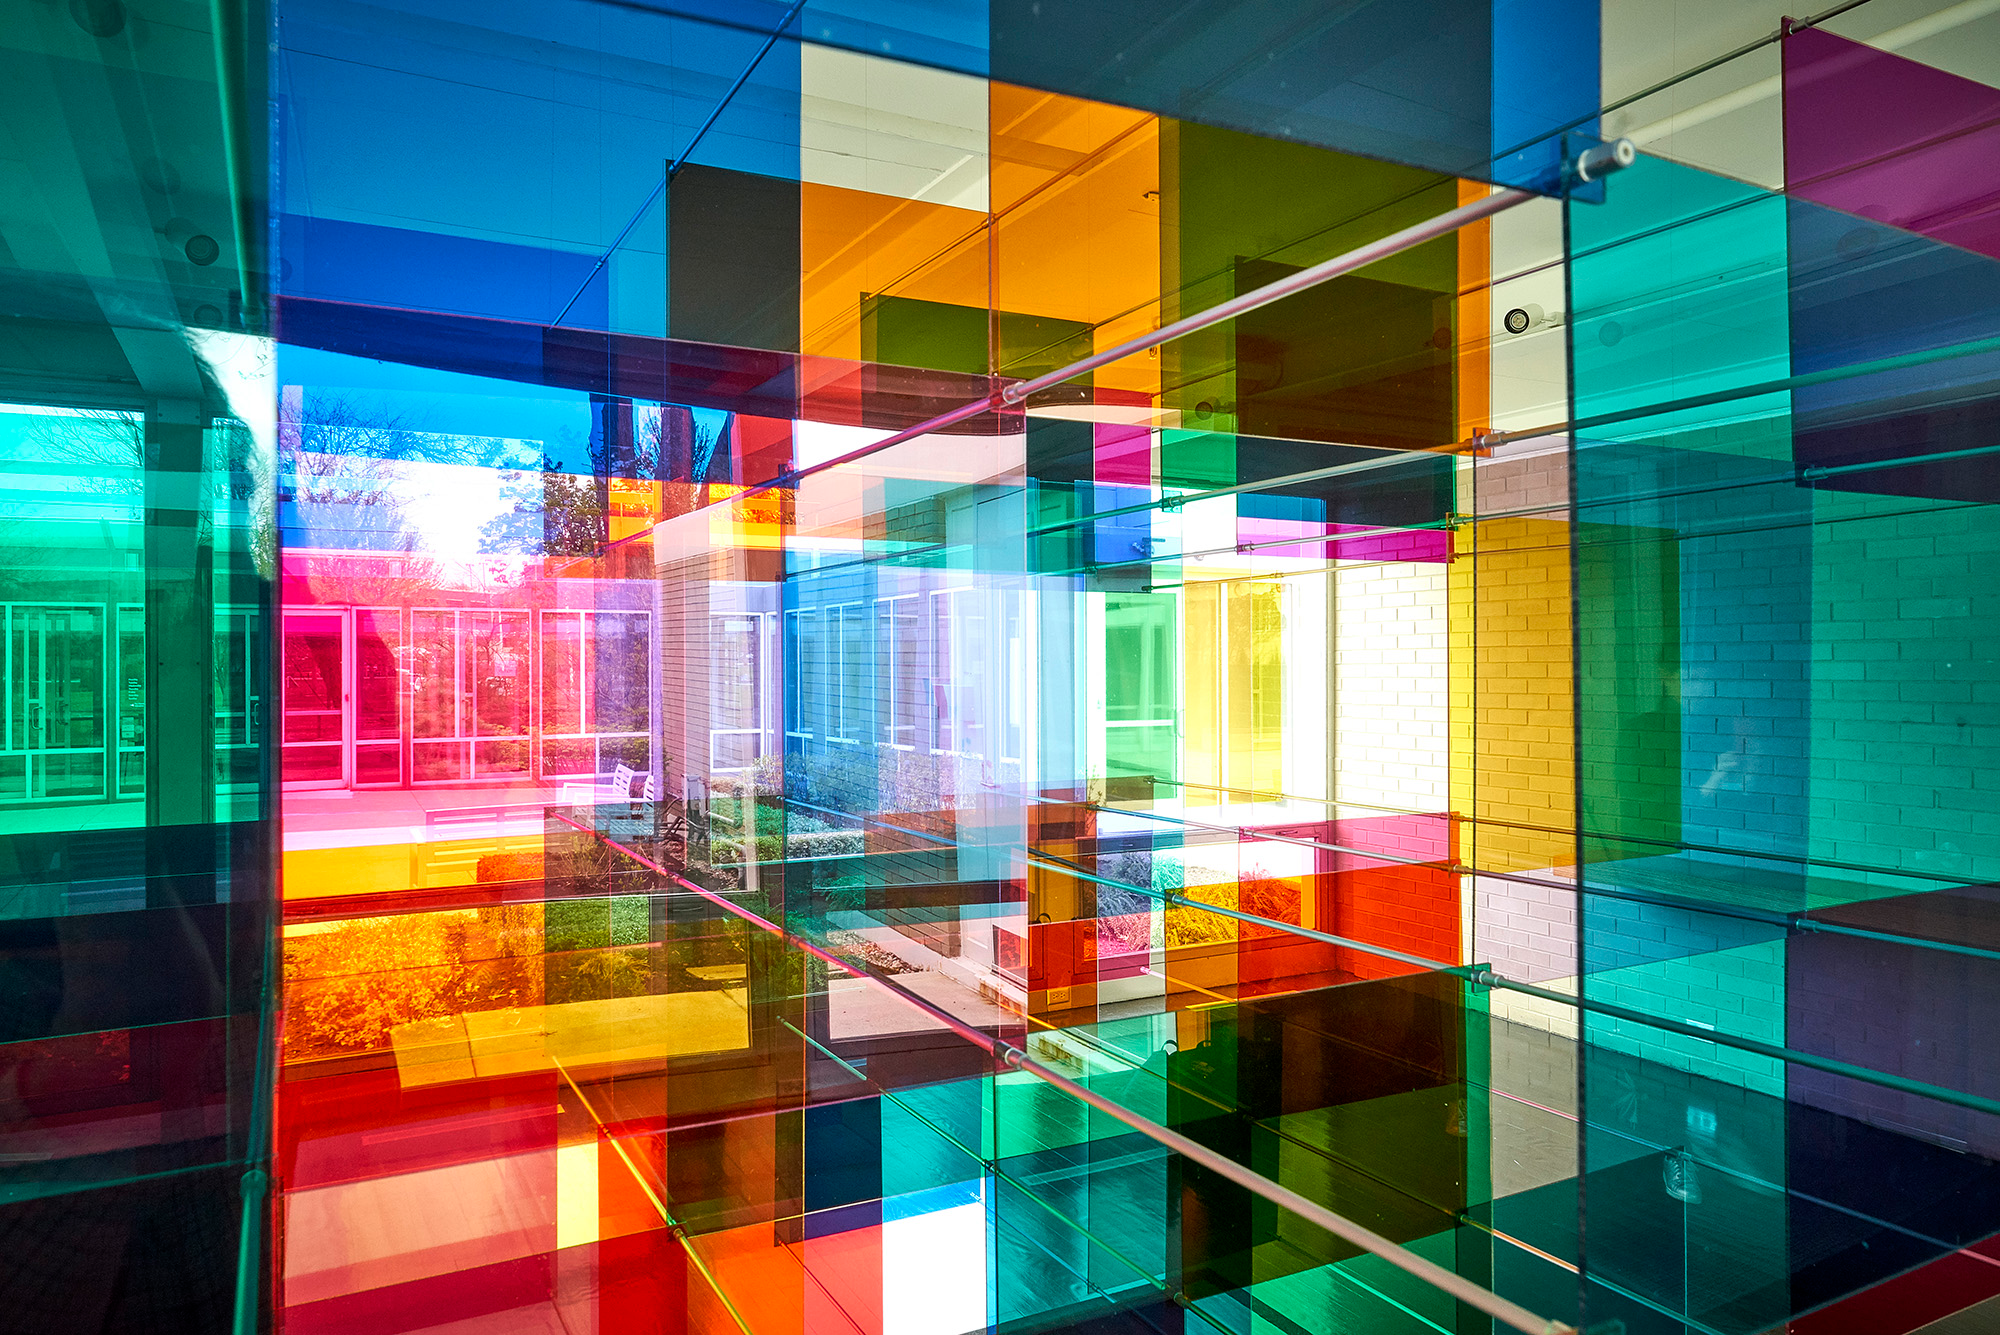 Light Shines Through a Rainbow-Tinted Geometric Panel Installation by Art Duo Luftwerk